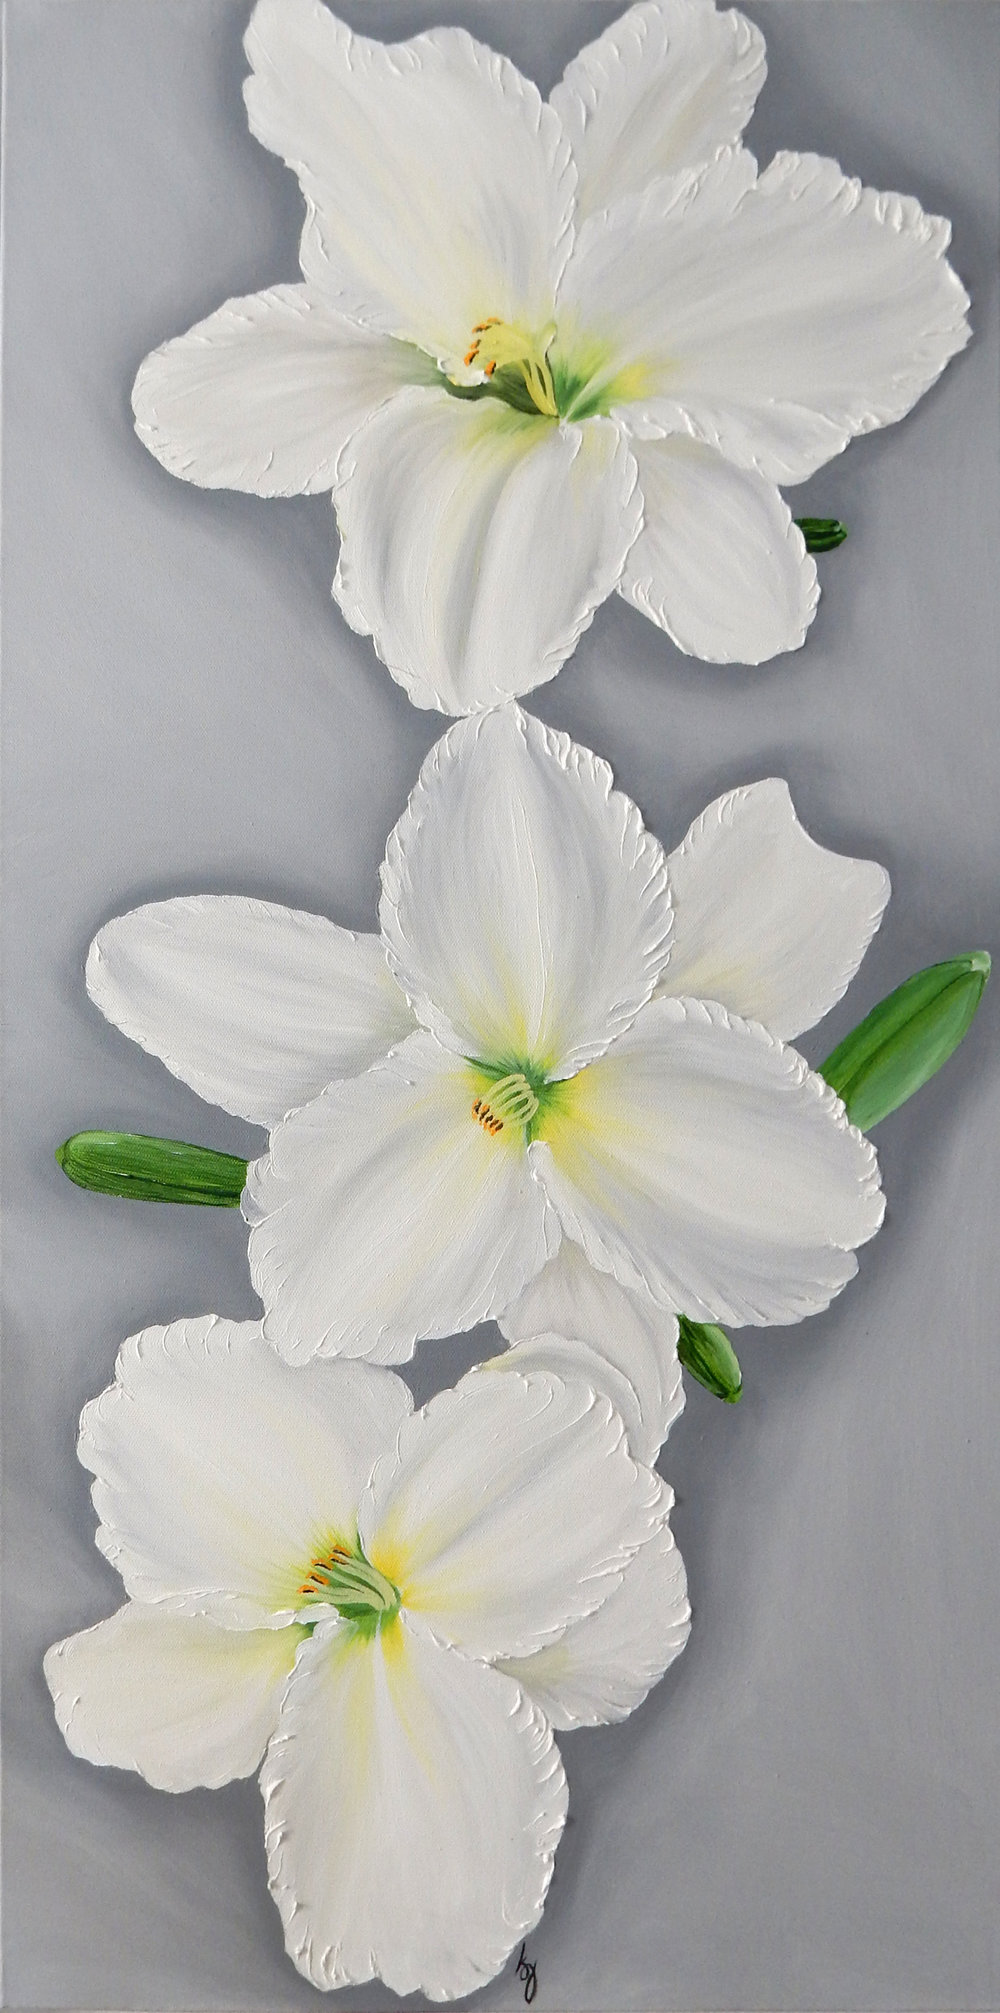 White Daylily Triple  2017 Oil on canvas 36 x 18 x 1.5 inches